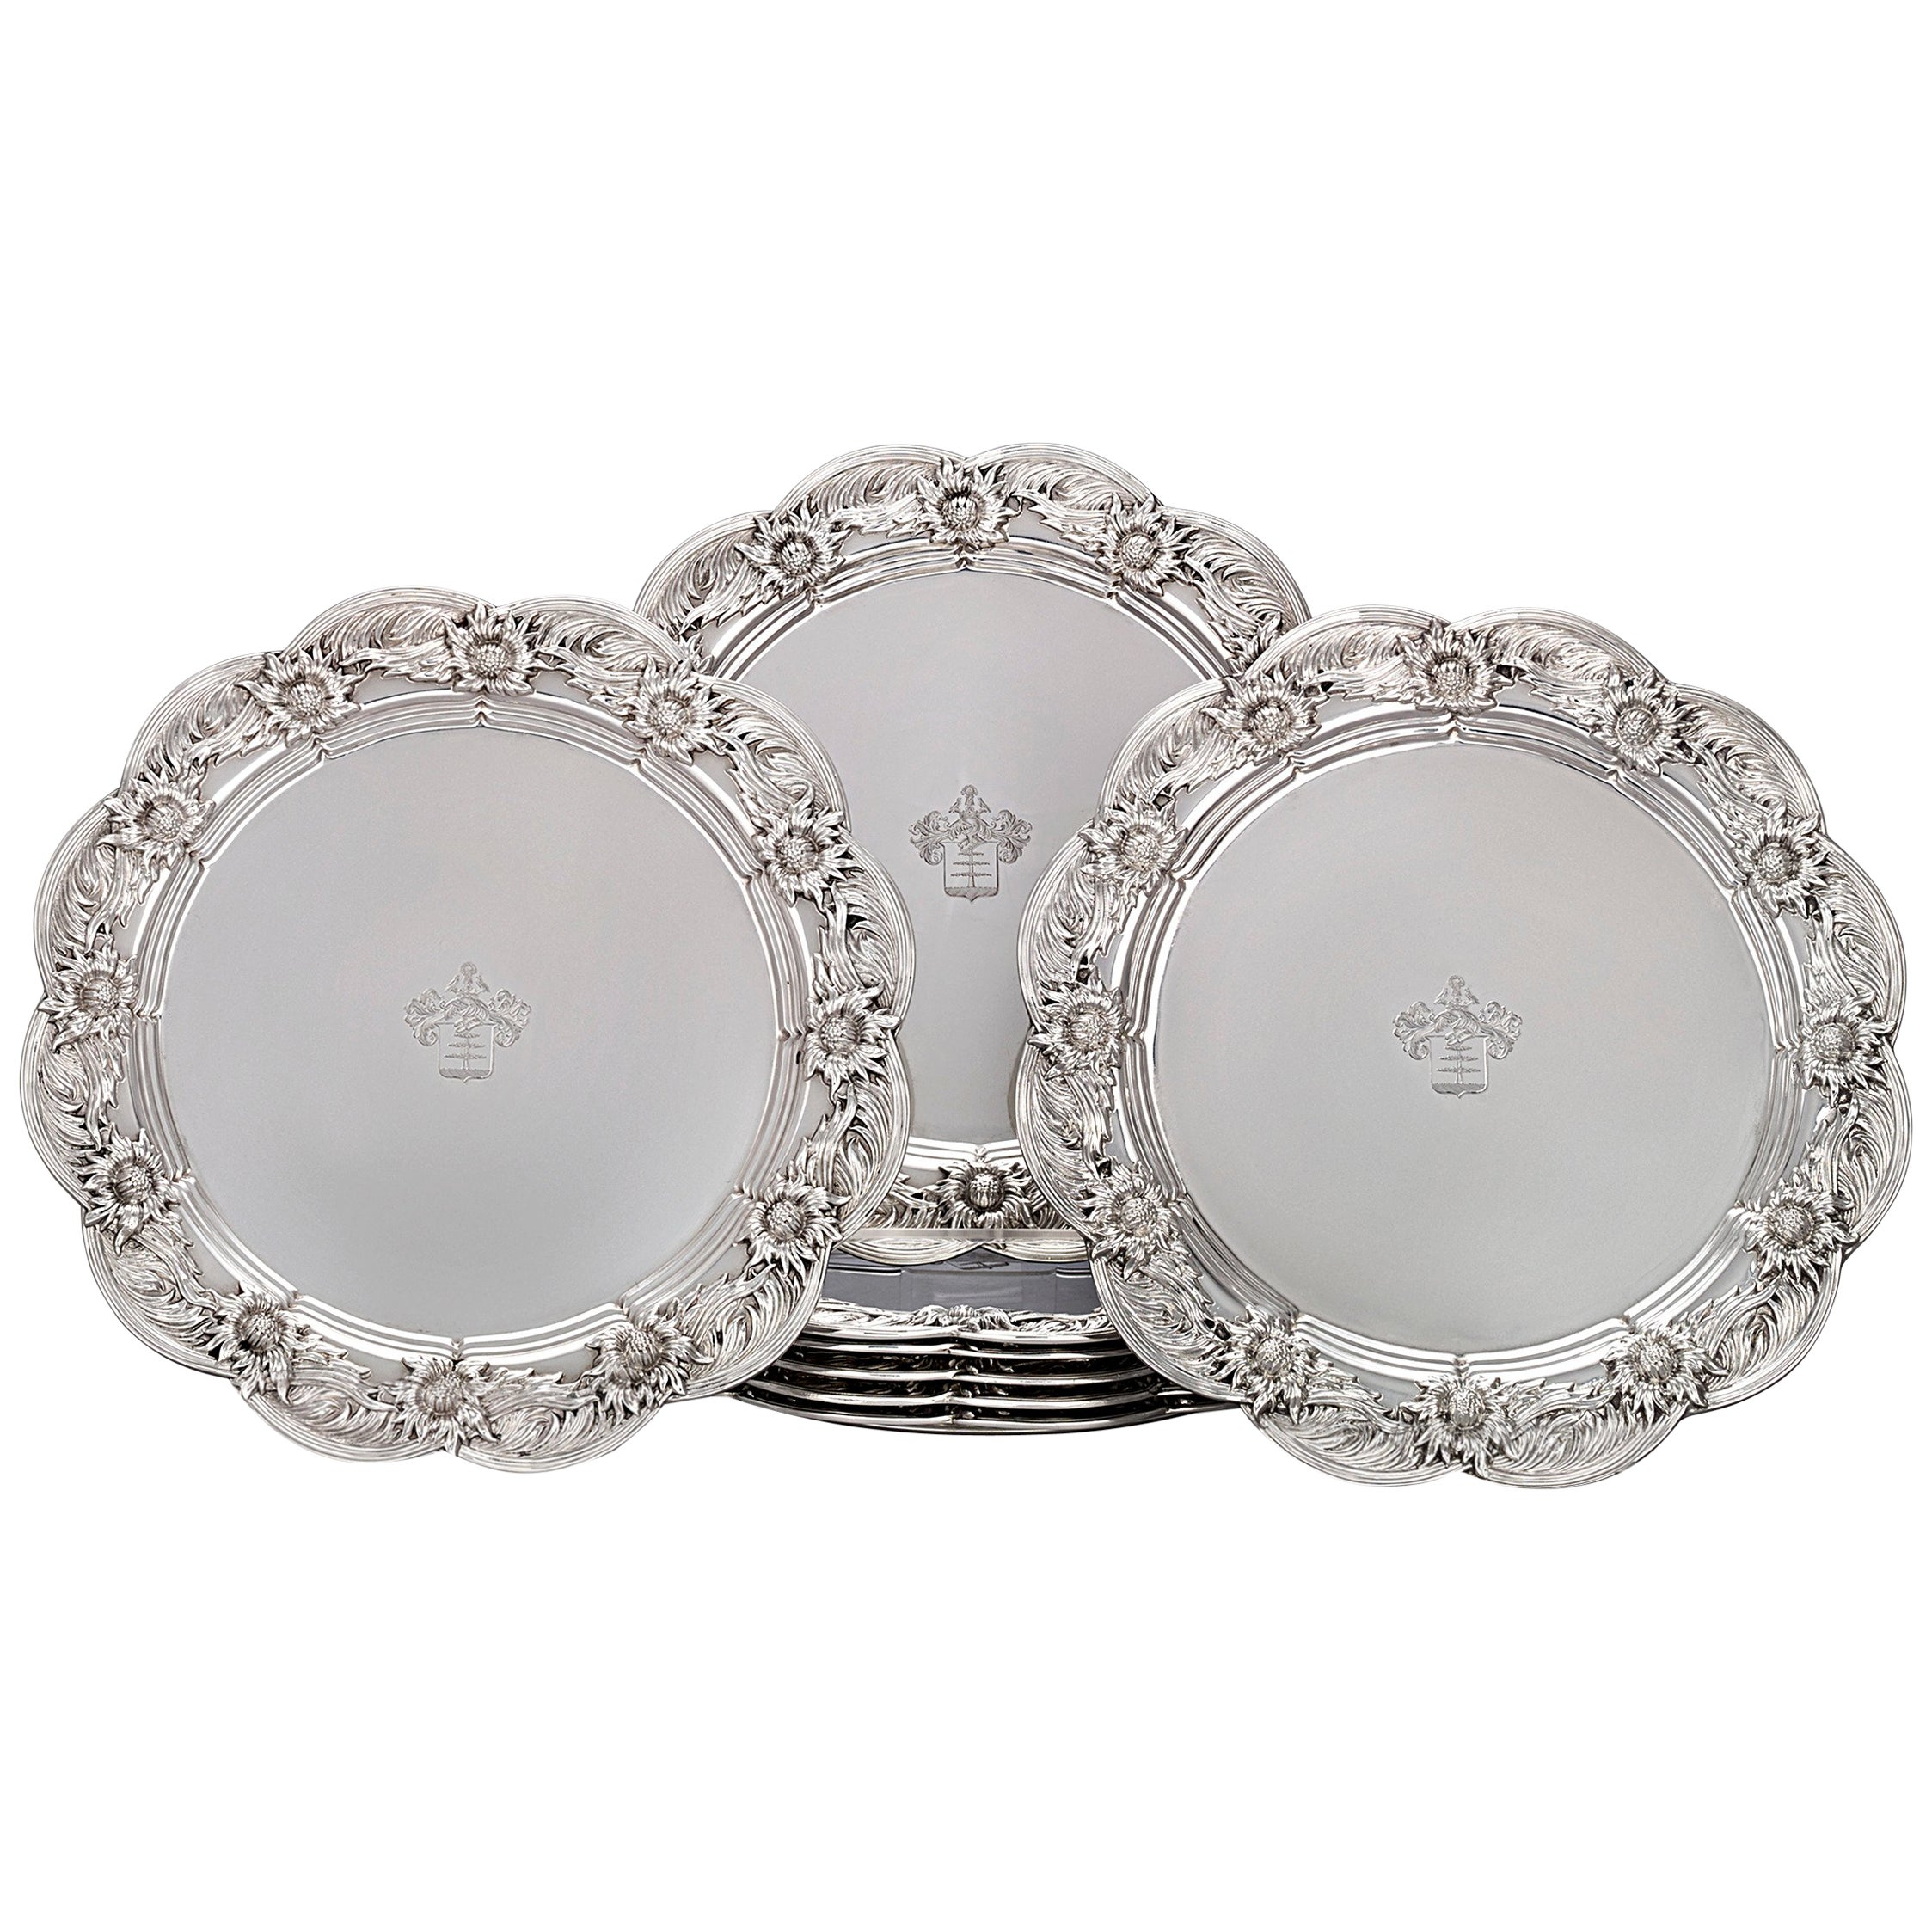 Chrysanthemum Sterling Silver Dinner Plates by Tiffany & Co